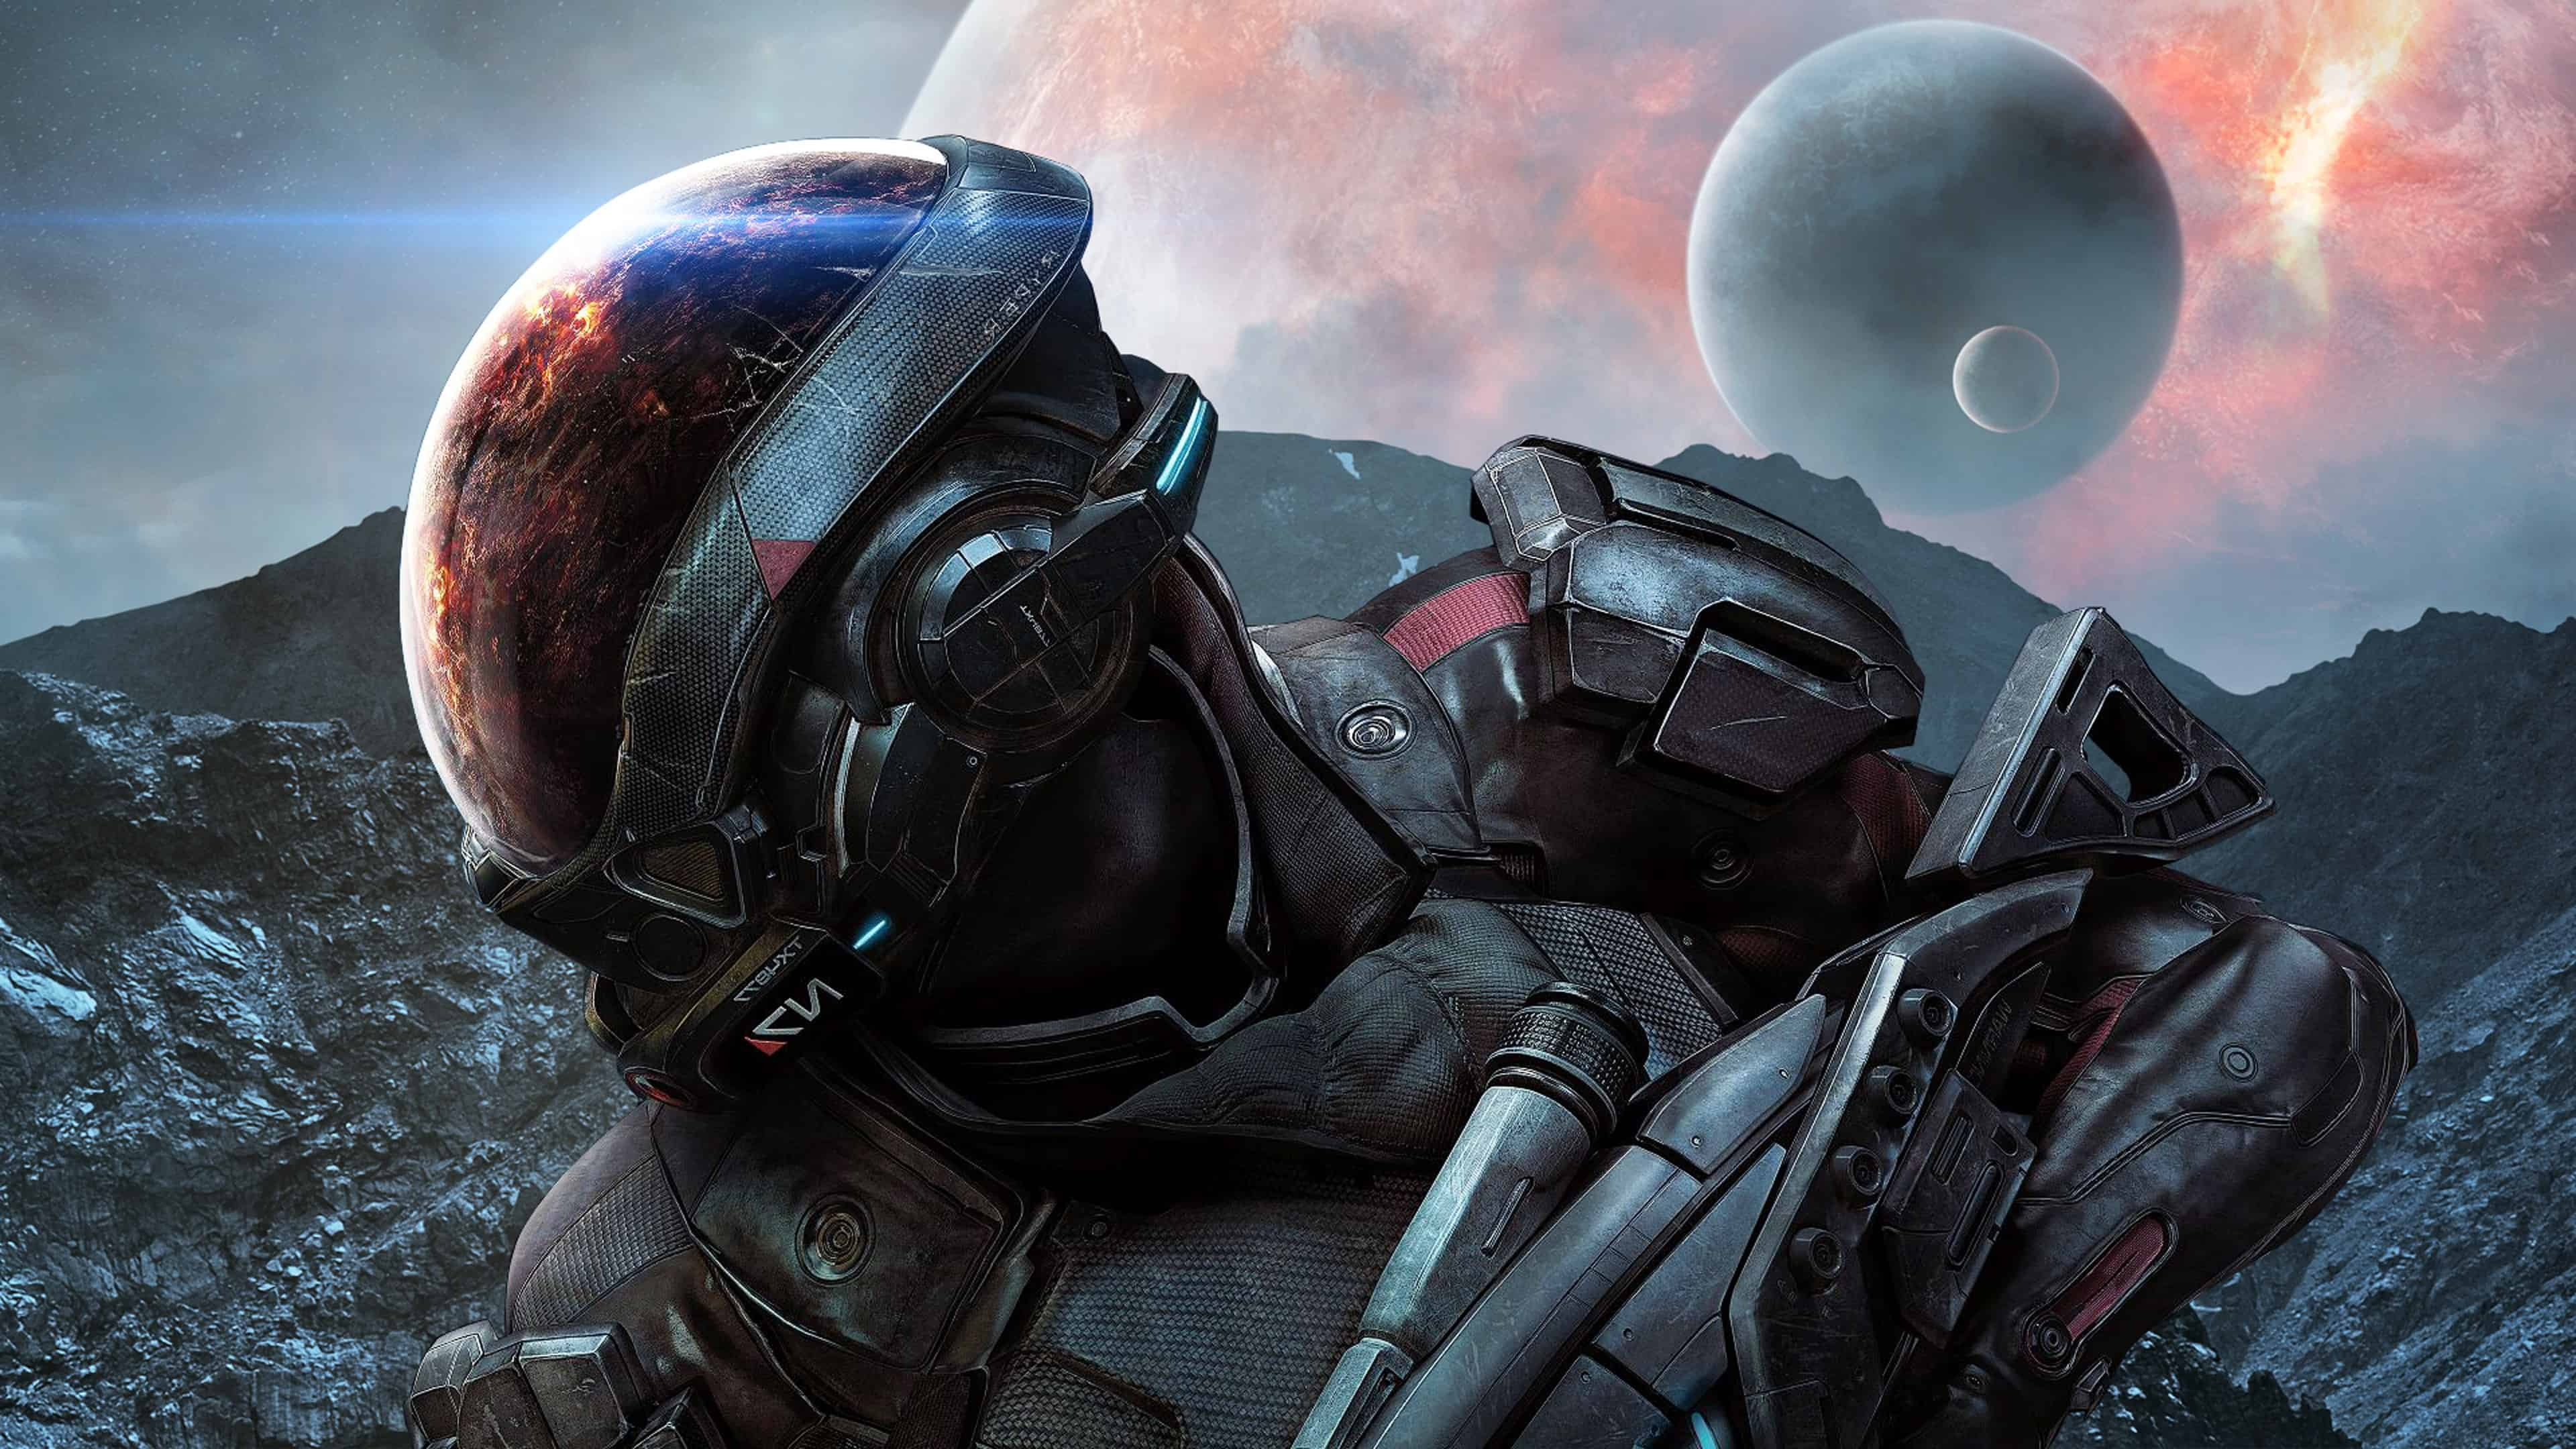 Mass Effect Andromeda 2019 Wallpapers - Wallpaper Cave